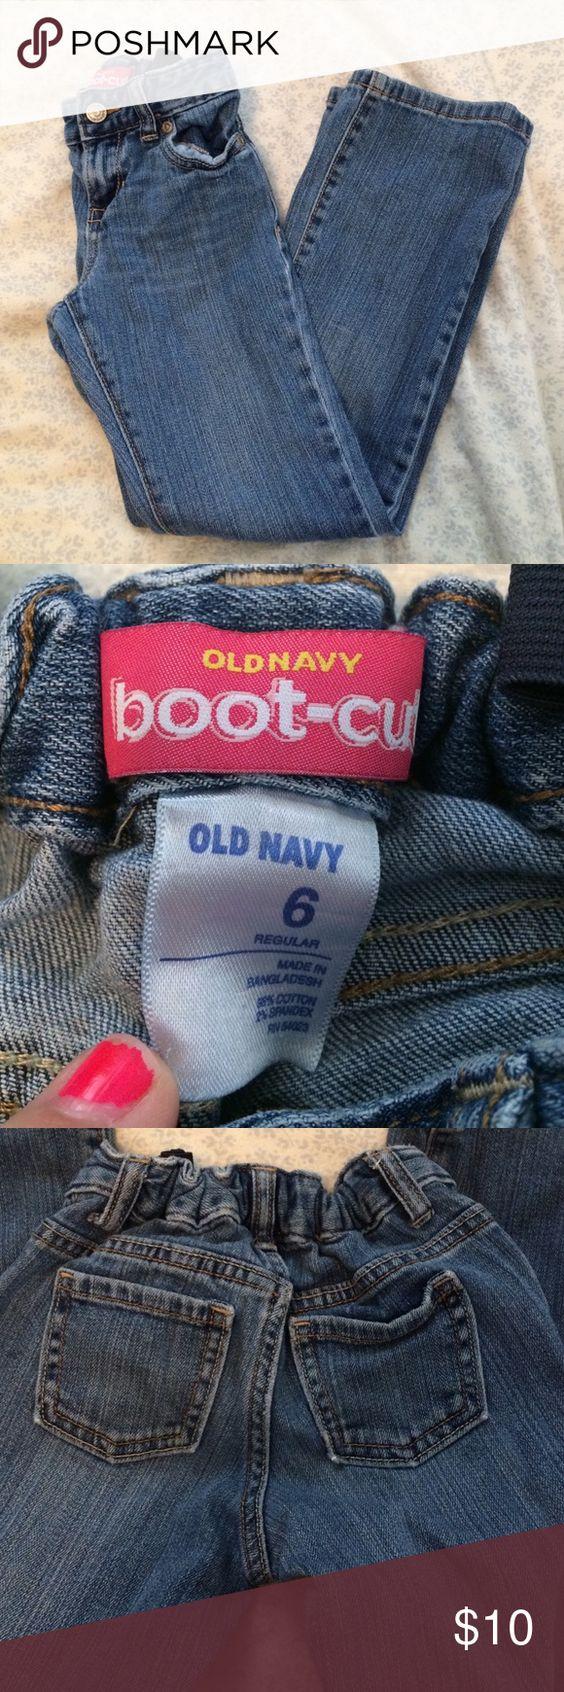 Old navy girl's size 6 Old navy girl's size 6 Old Navy Bottoms Jeans